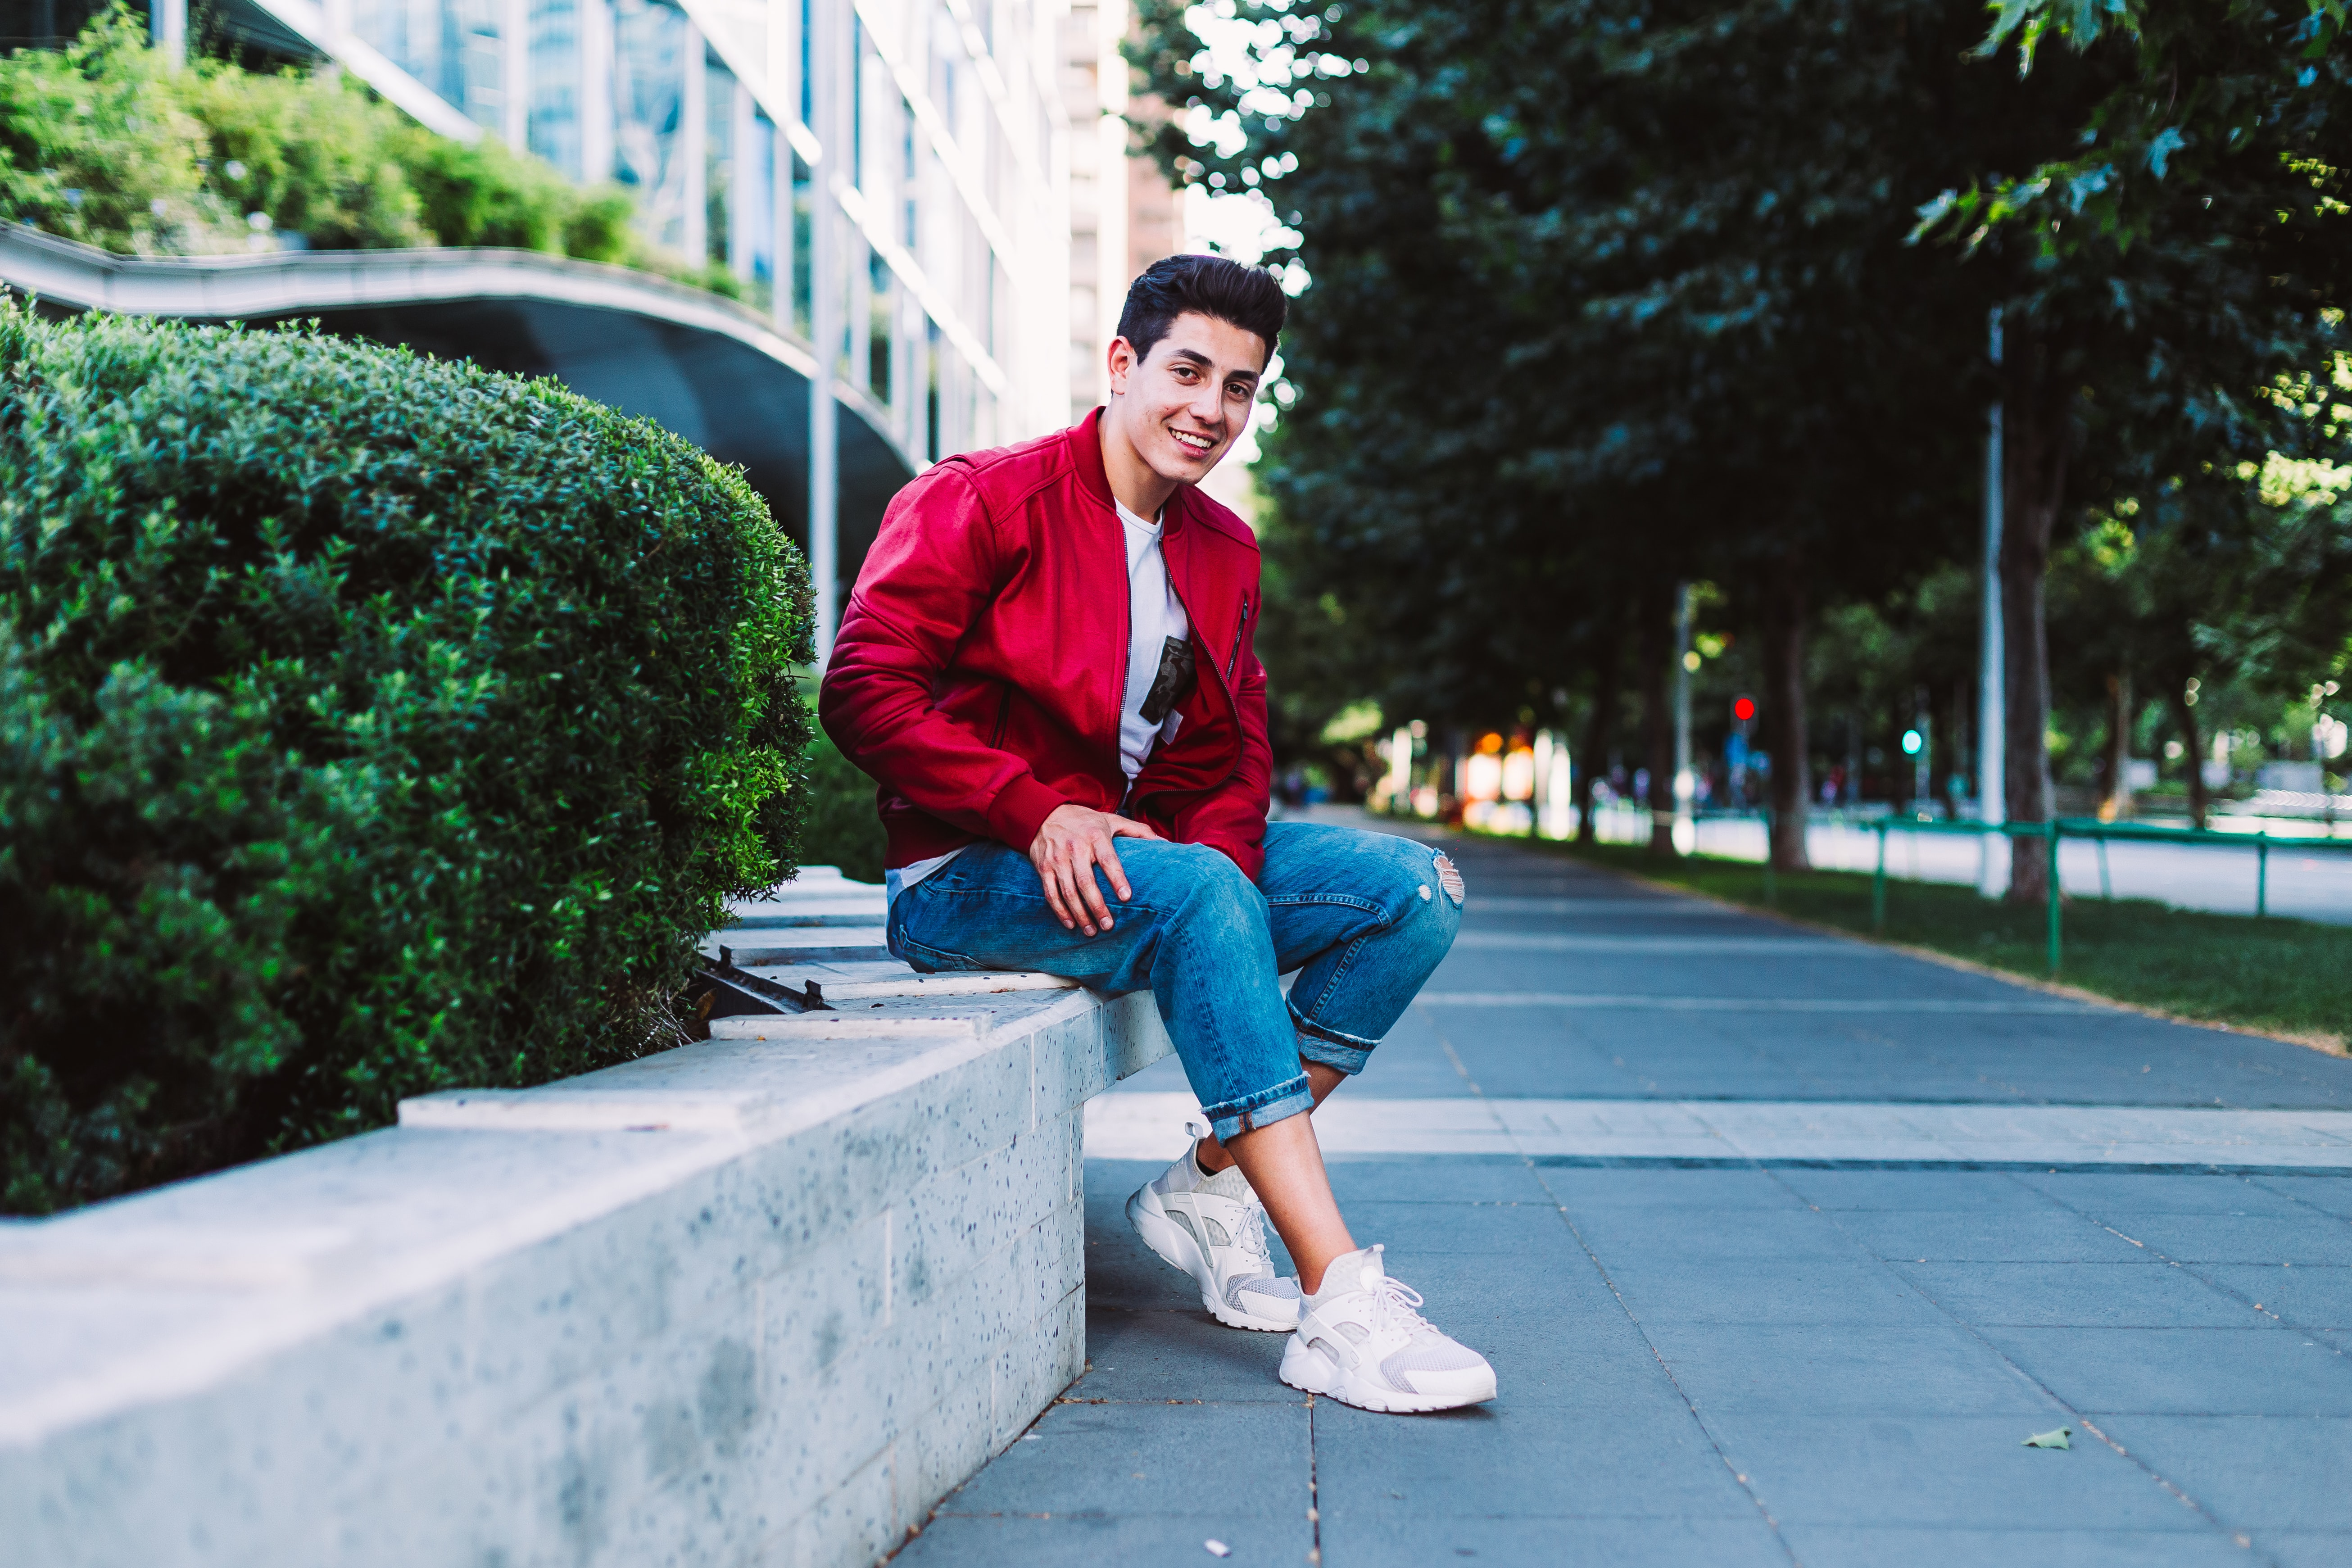 shallow focus photography of man sitting on pavement while smiling